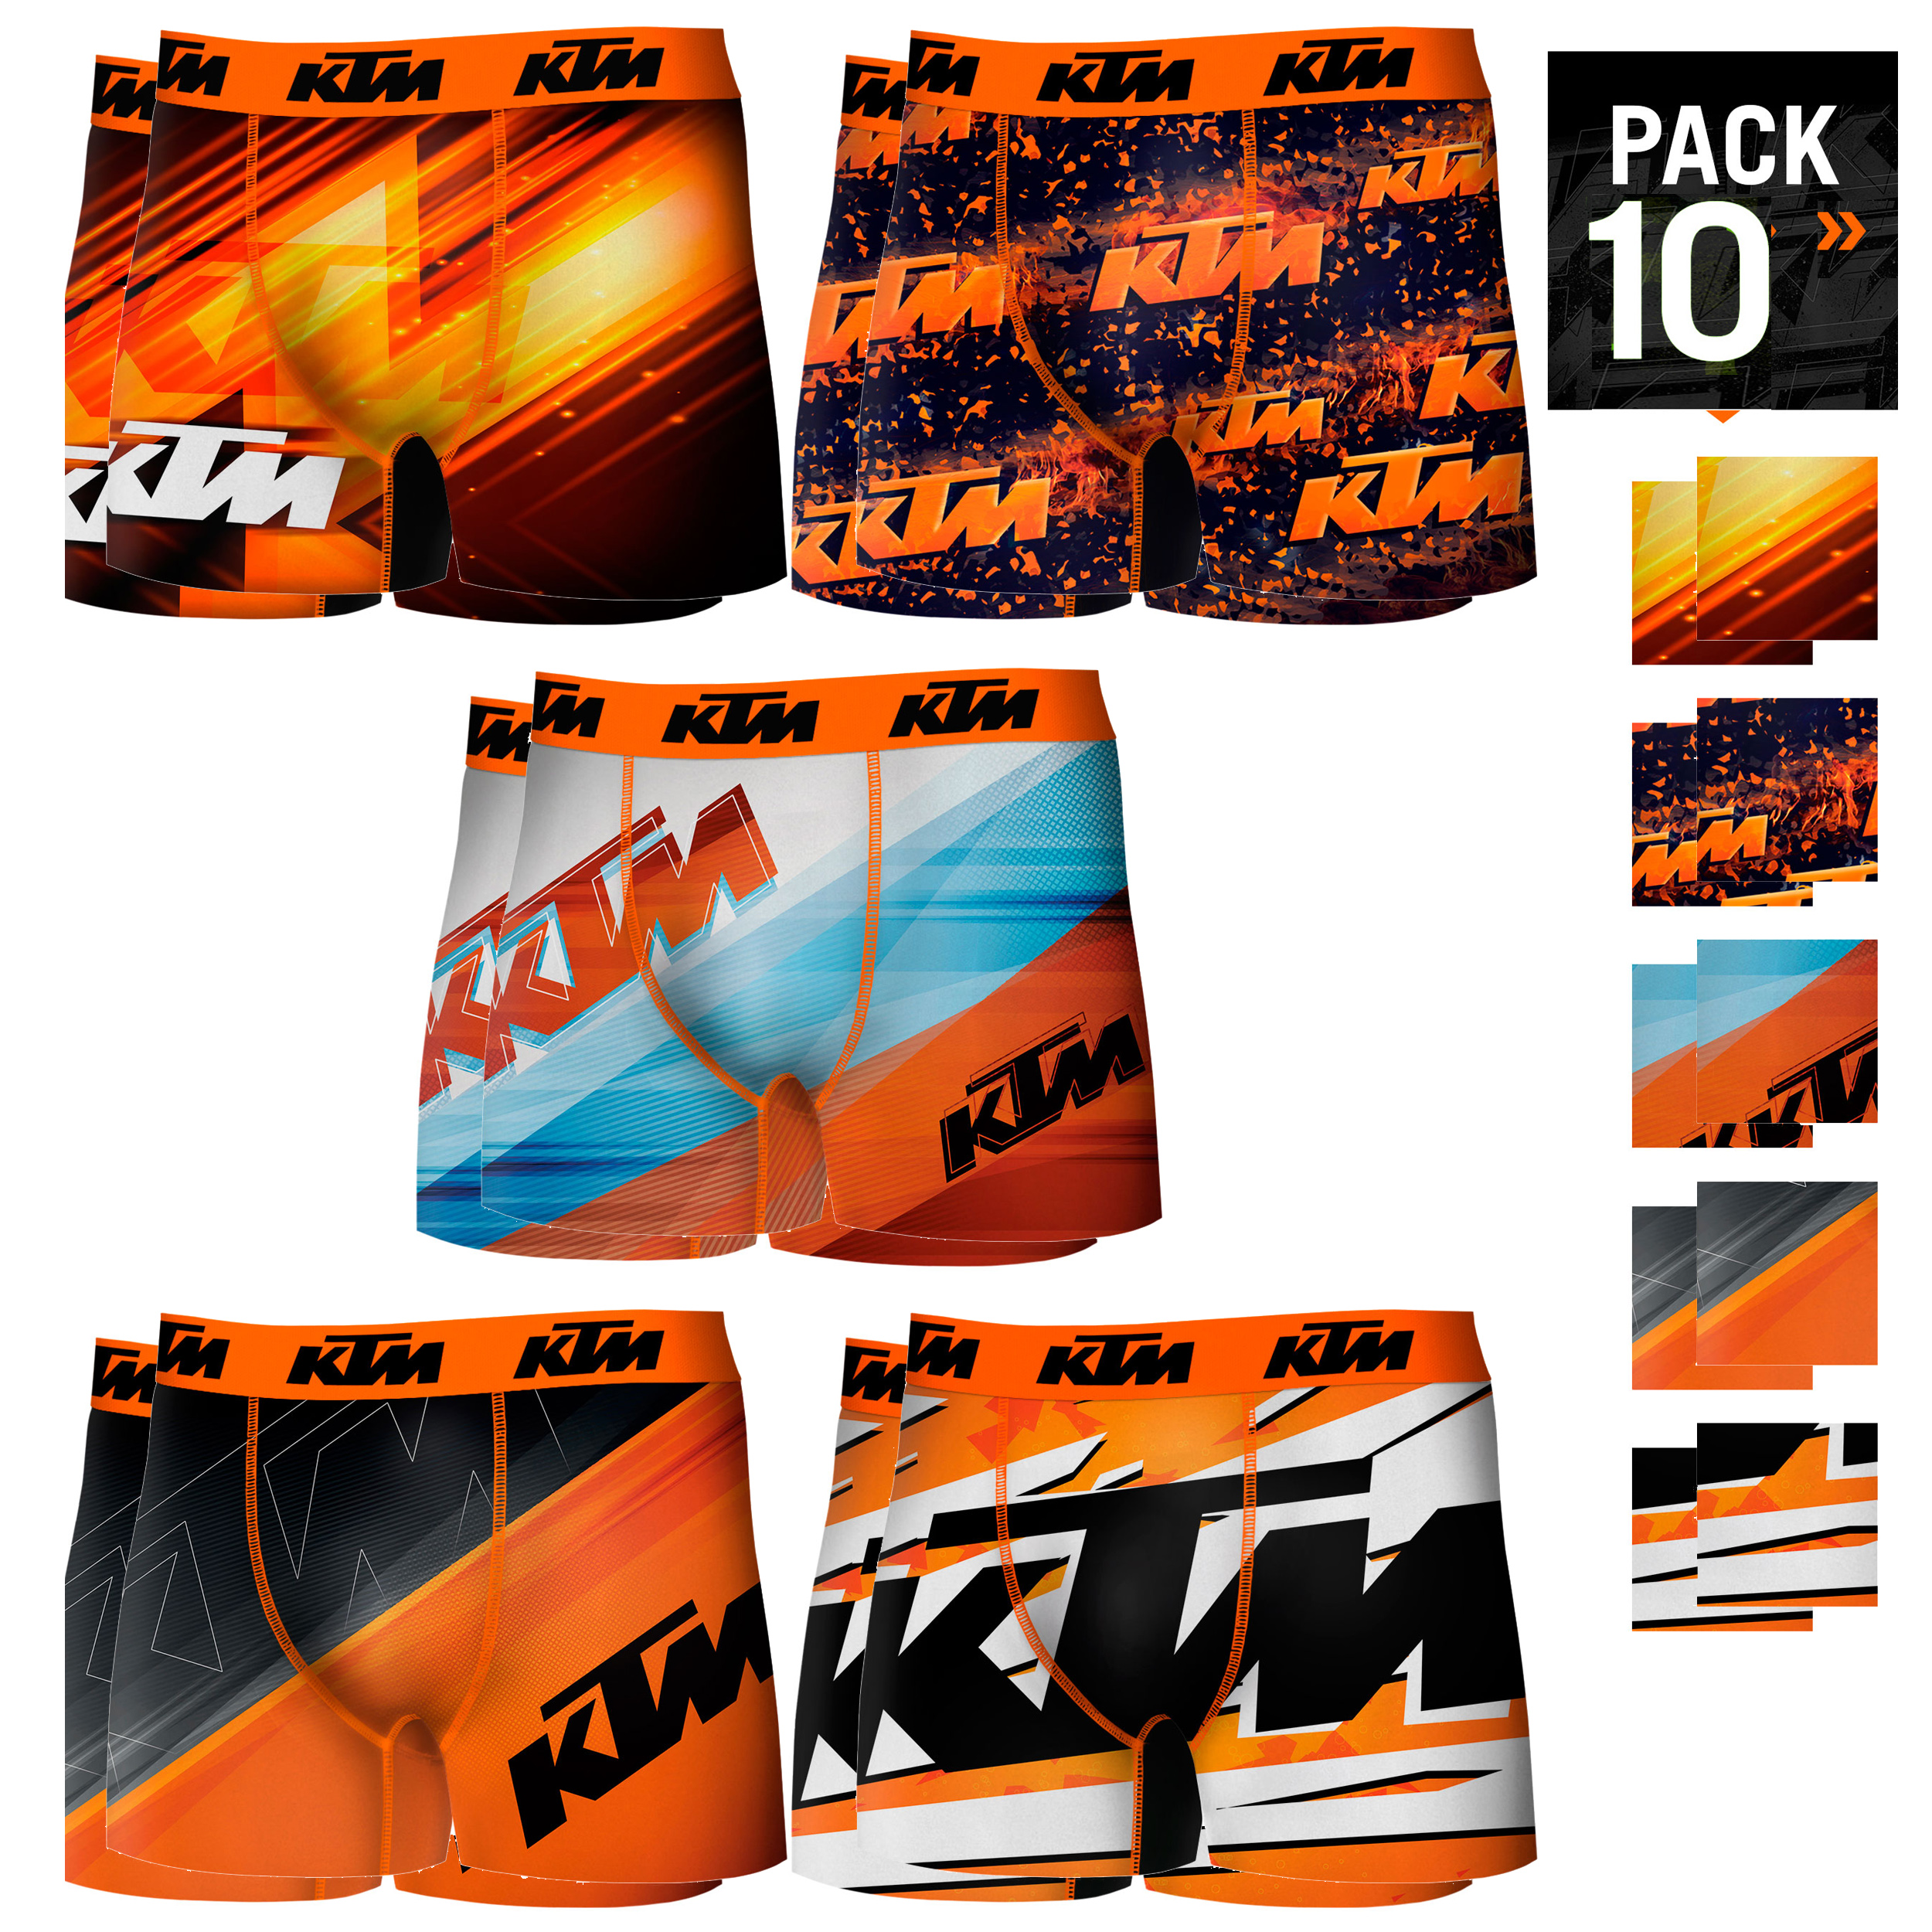 KTM Boxers Type Boxer Pack Top 10 Drives In Various Colour For Men